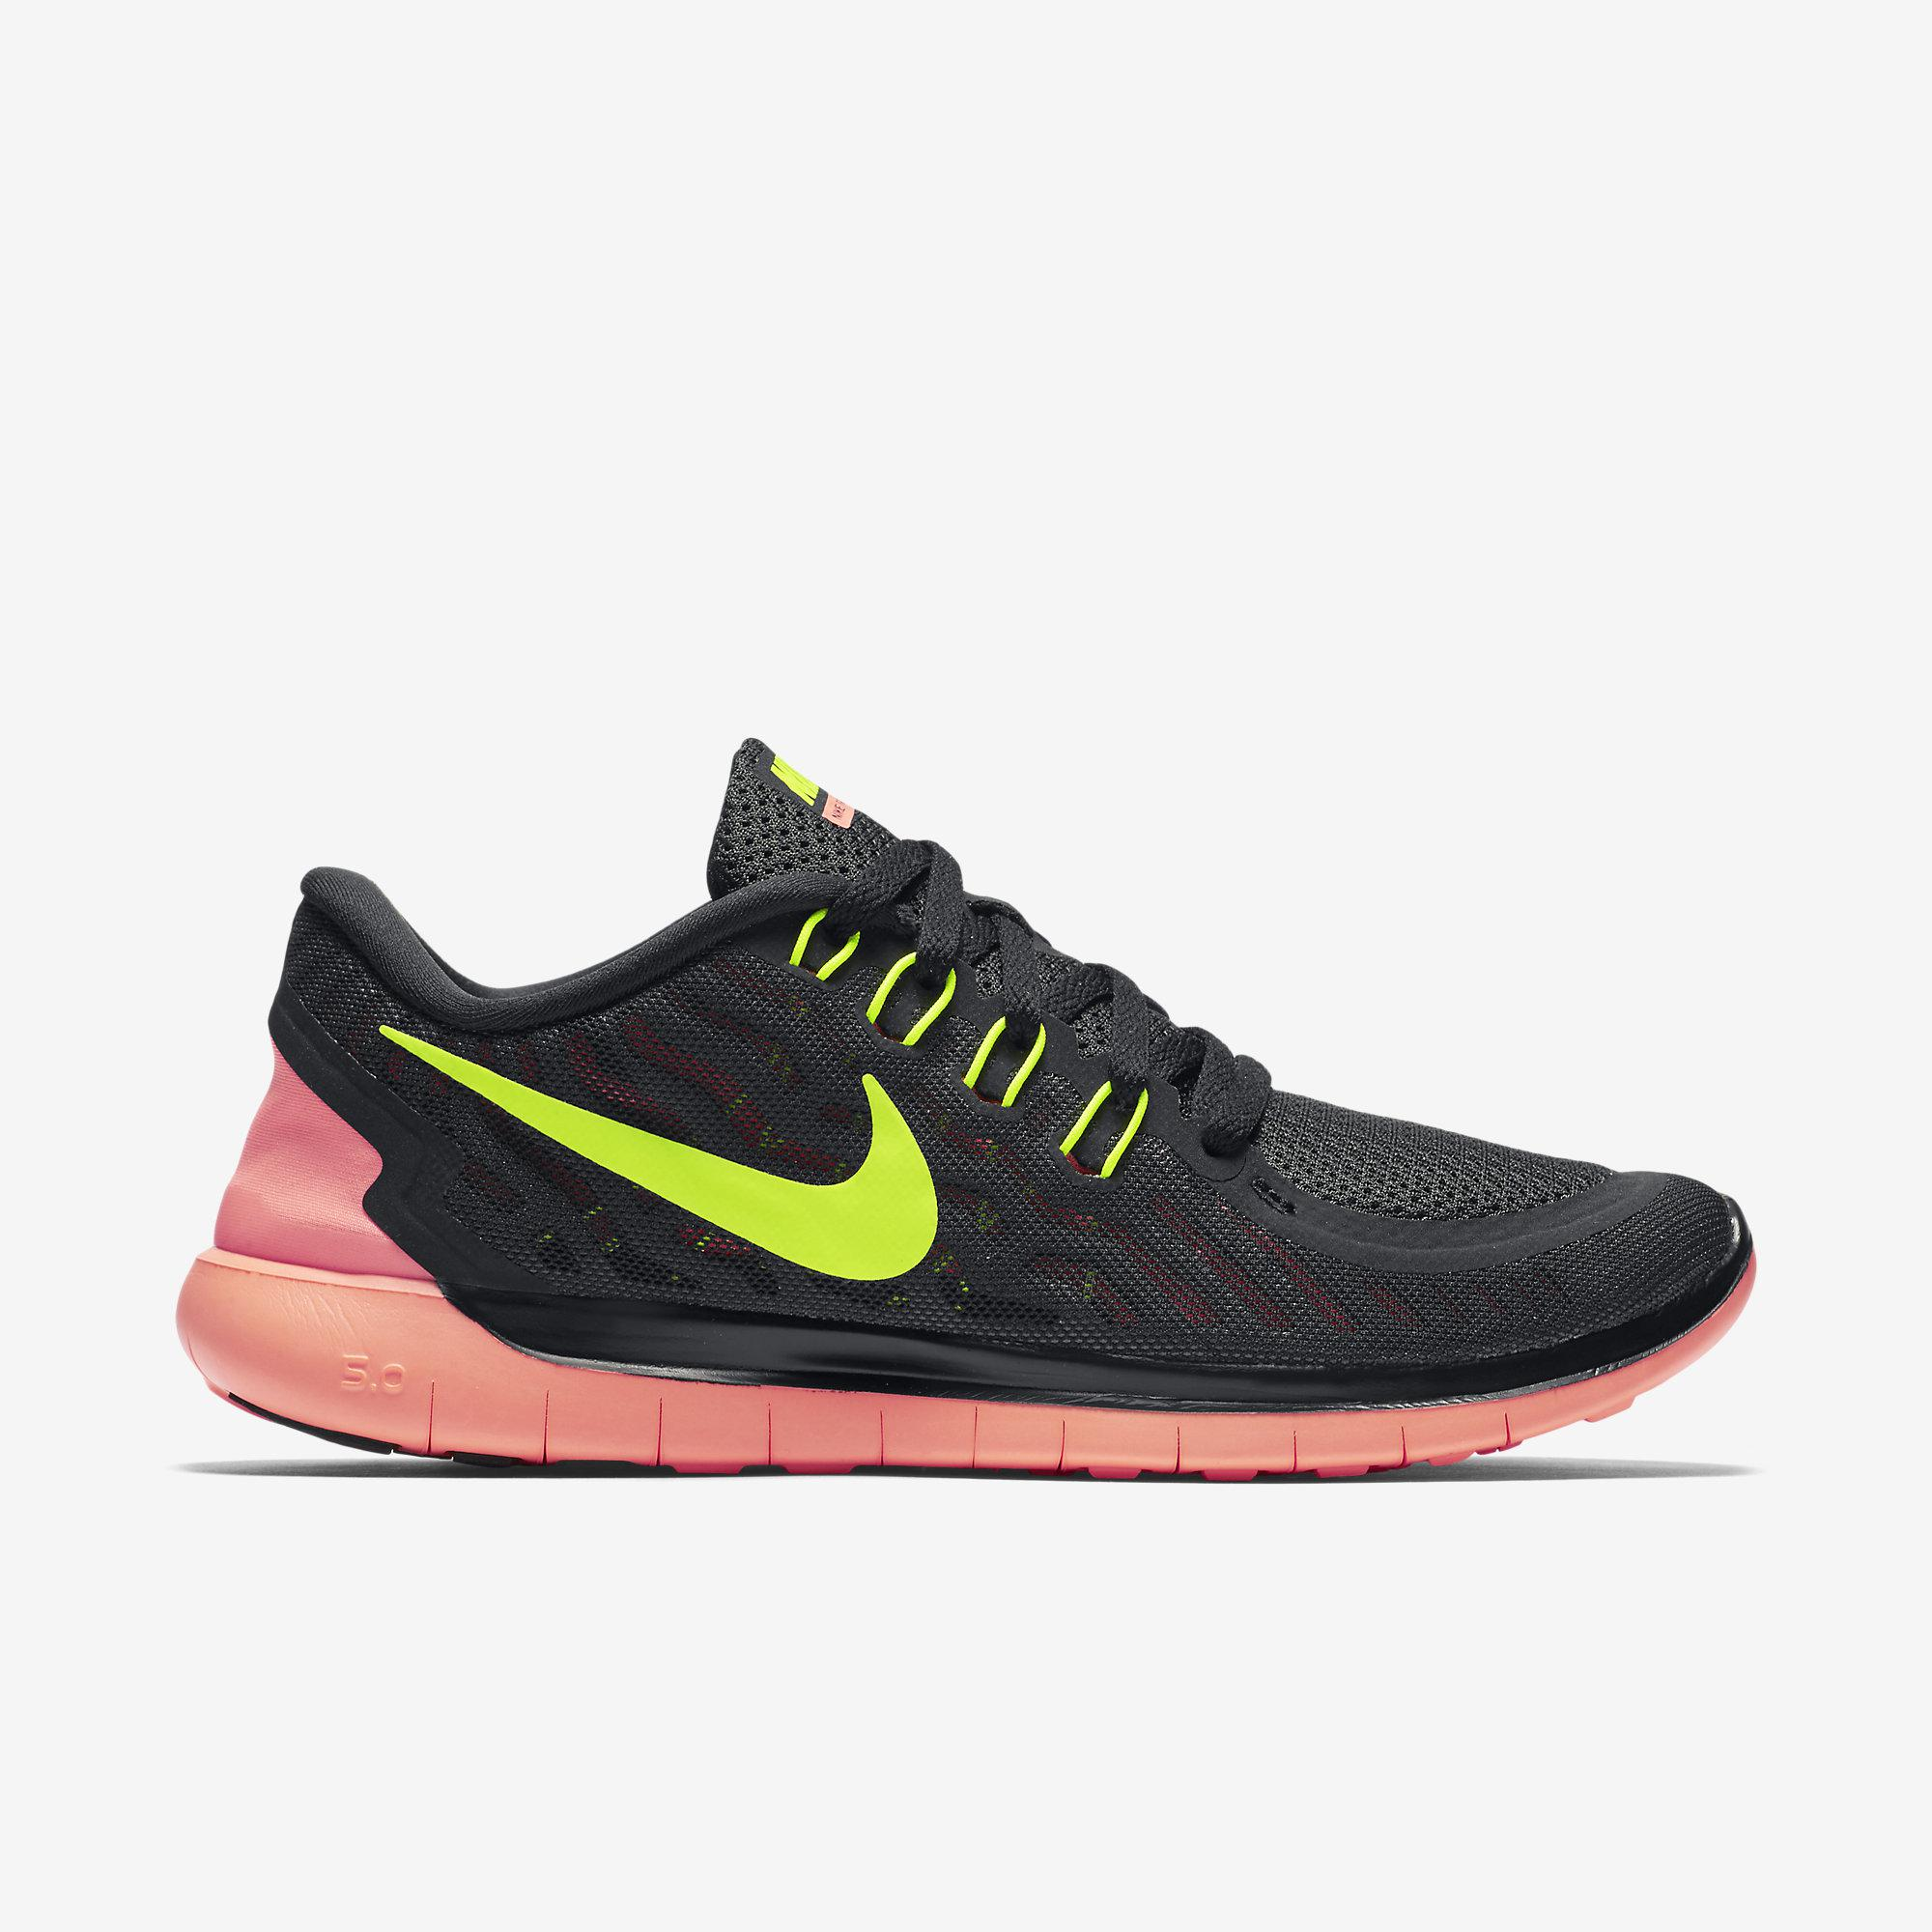 Blackyellowmango Running Shoes Womens 5 0 Nike Free wPZaqAY